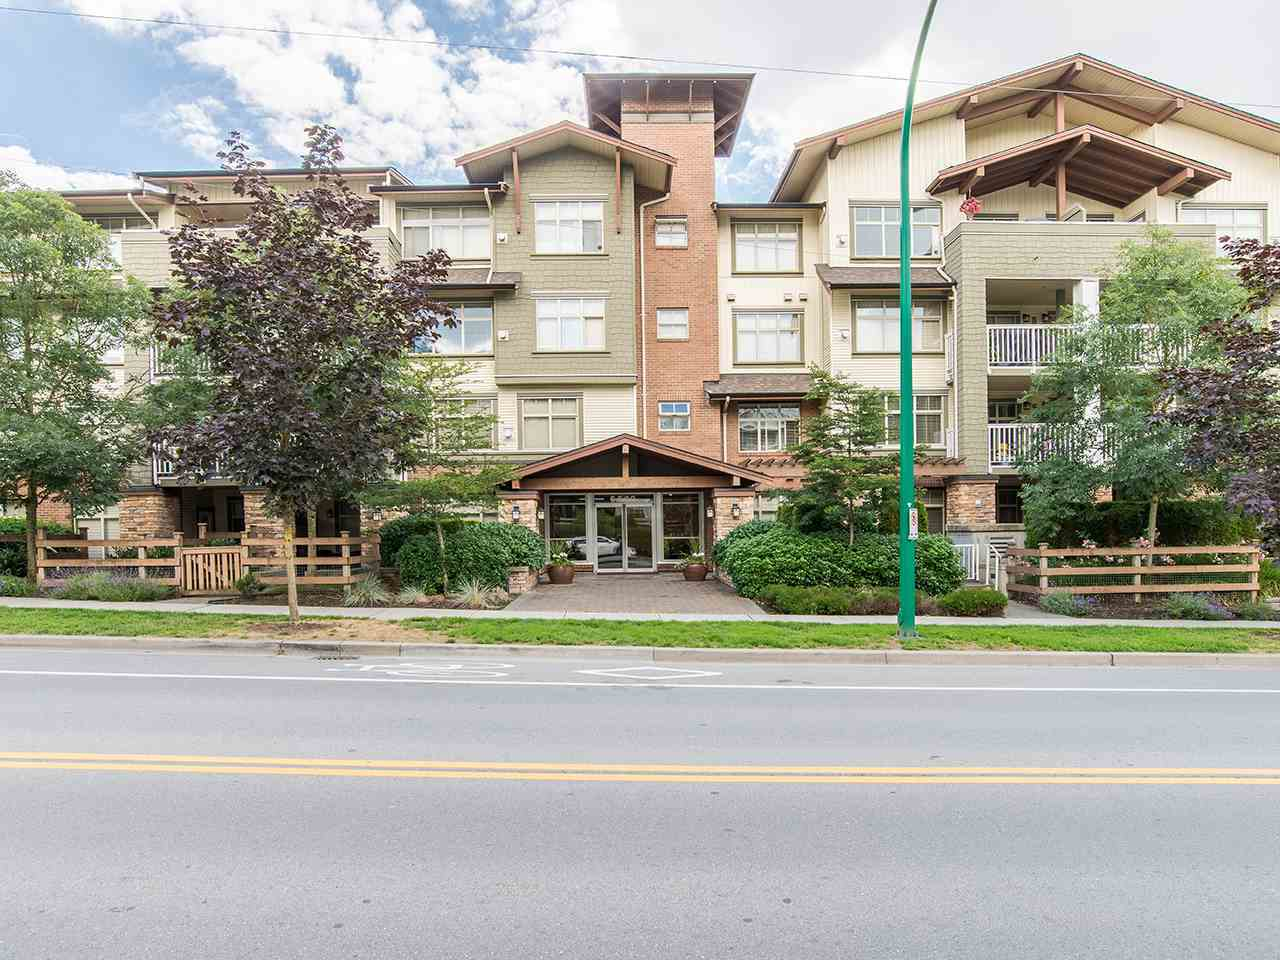 2 bedroom 2 bath and den. Don't miss out in the well sought out area of Clayton Heights. Close to schools, trans routes, and Shopping! Large park area to enjoy. Built by award winning Solterra Deve. Only 7 years young and no GST!